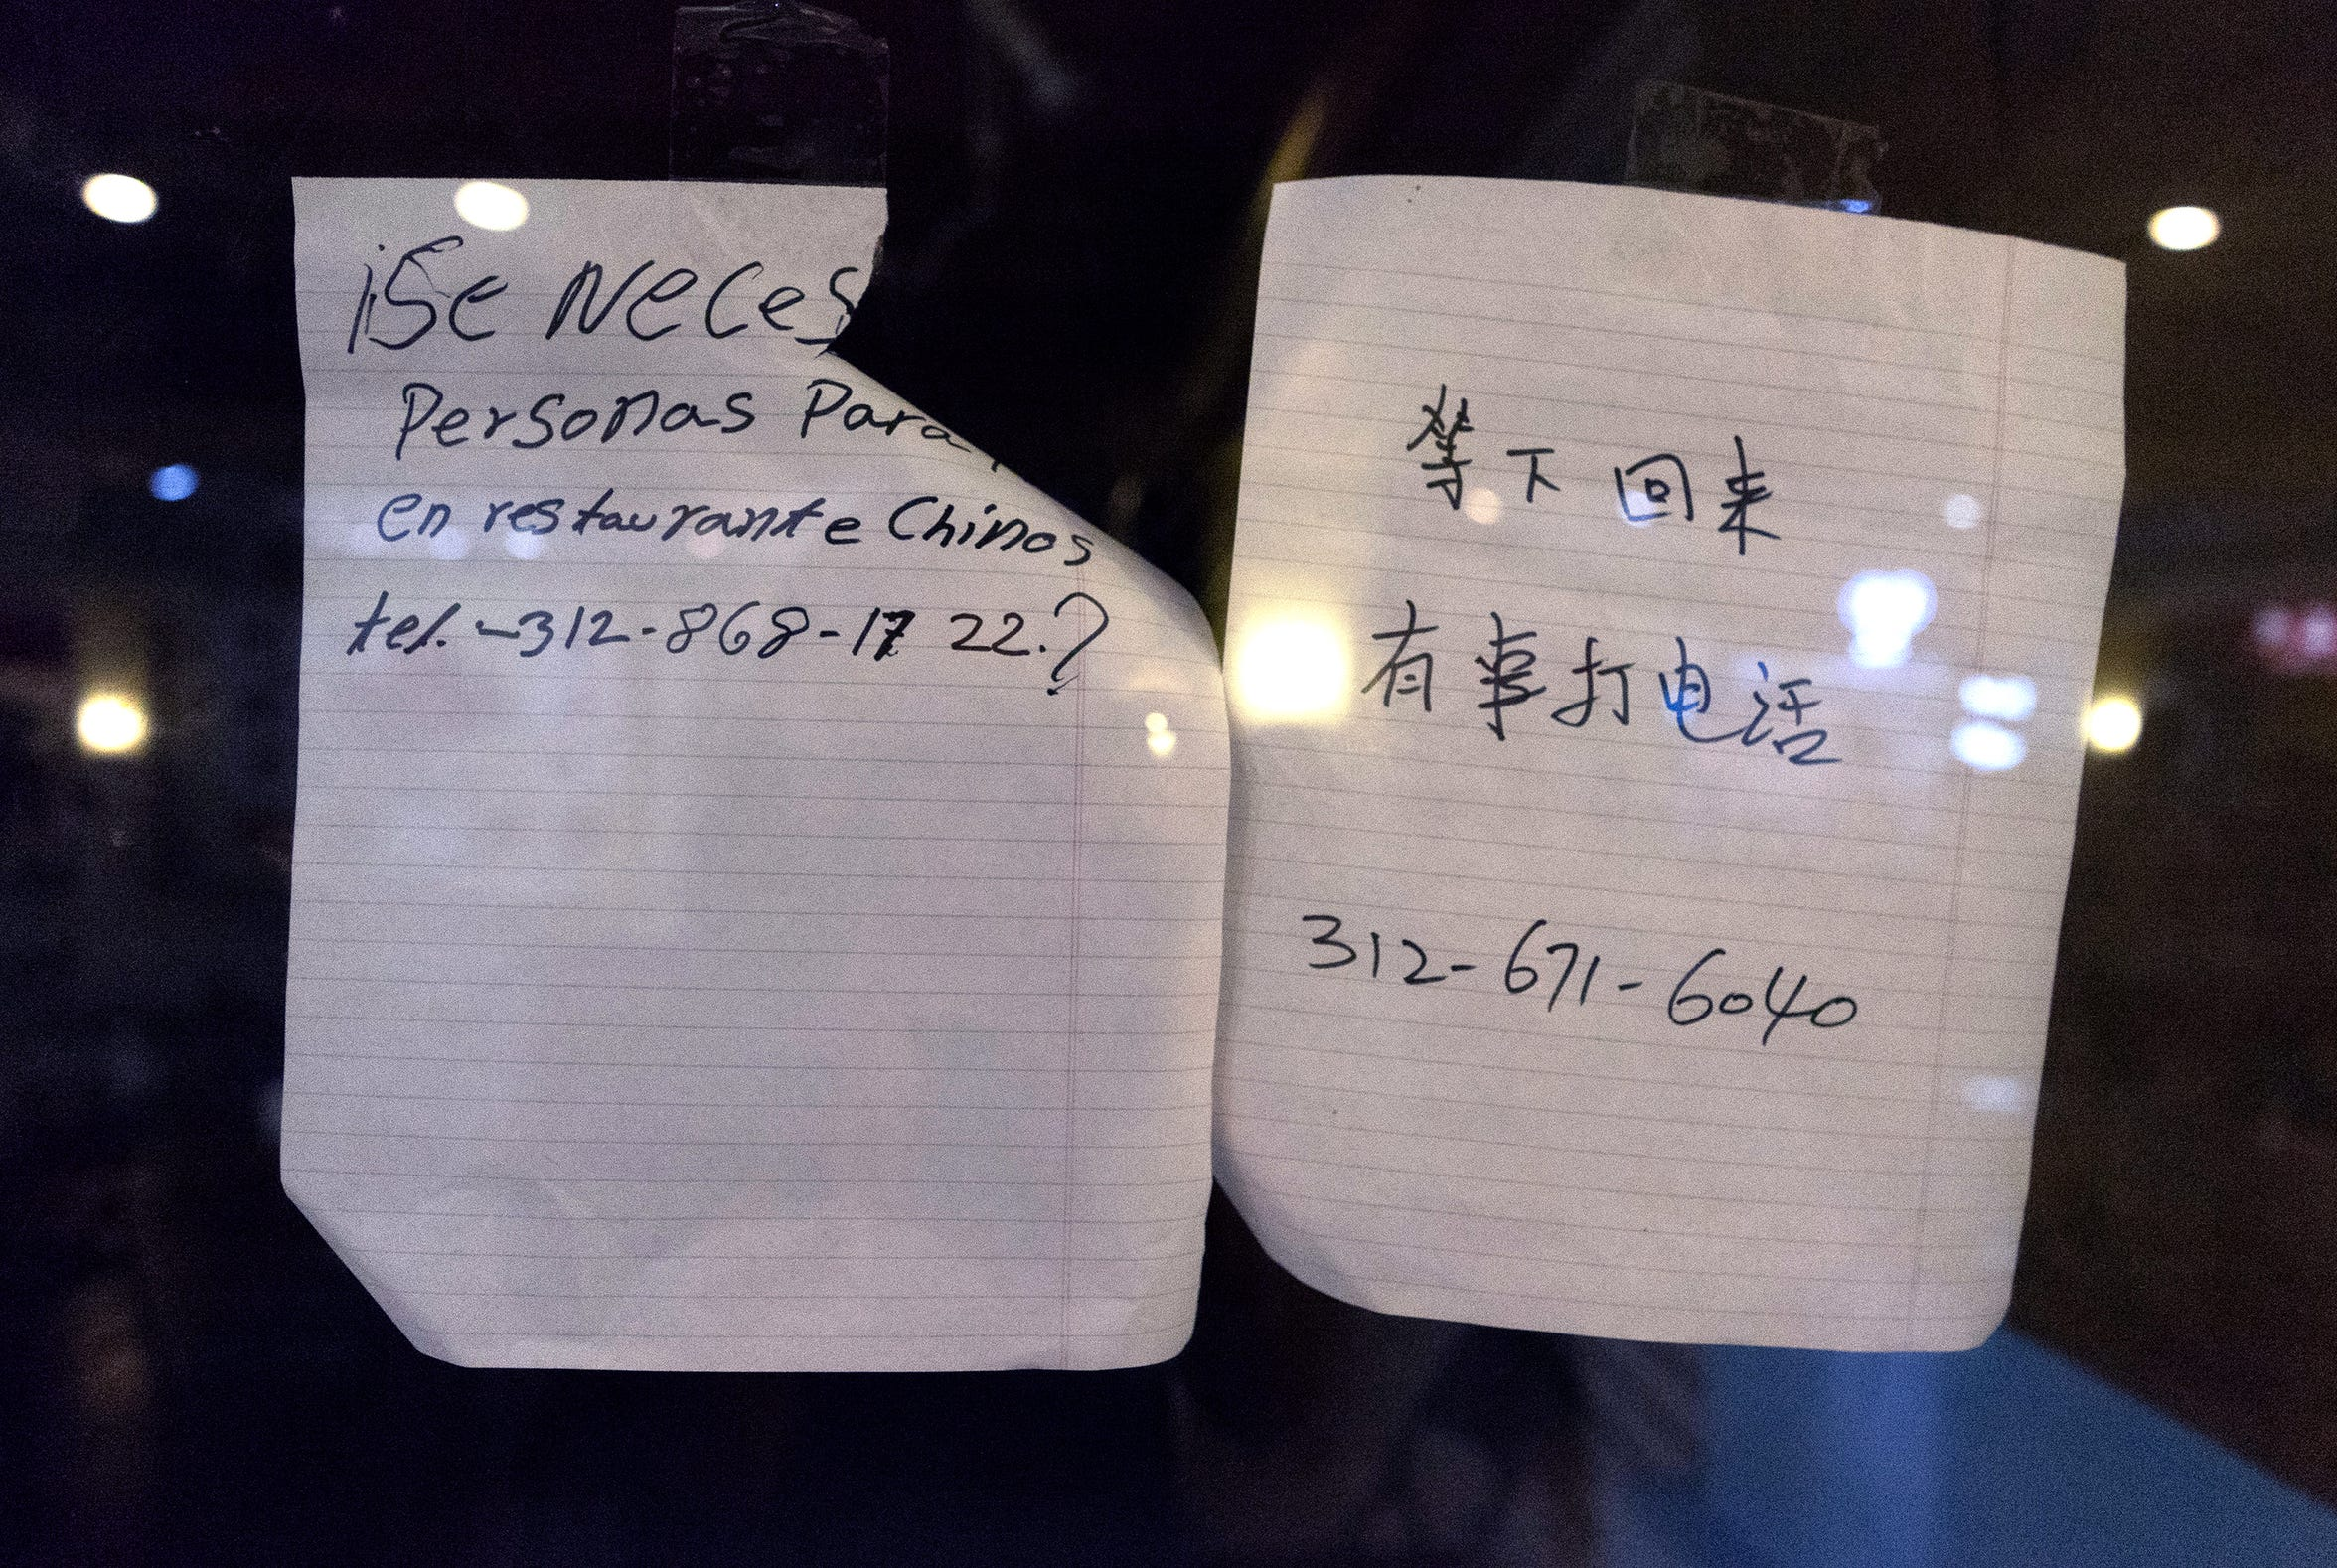 A handwritten sign in Spanish, posted in the window of the Shun Yi Employment Agency in Chicago's Richland Center Food Court, advertises jobs in Chinese restaurants.